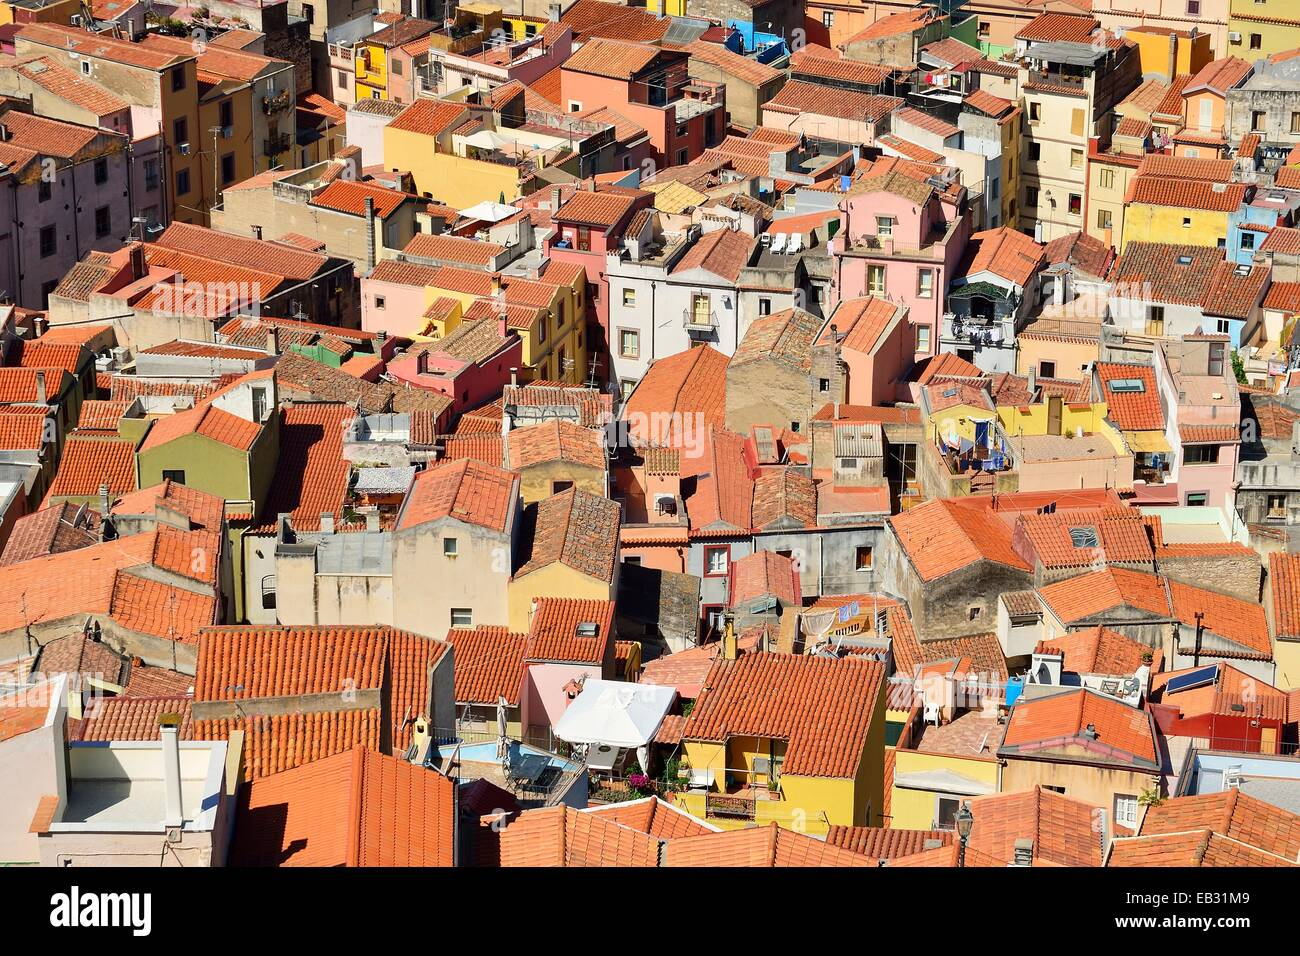 Overlooking the tiled roofs of the historic centre, Bosa, Oristano Province, Sardinia, Italy - Stock Image